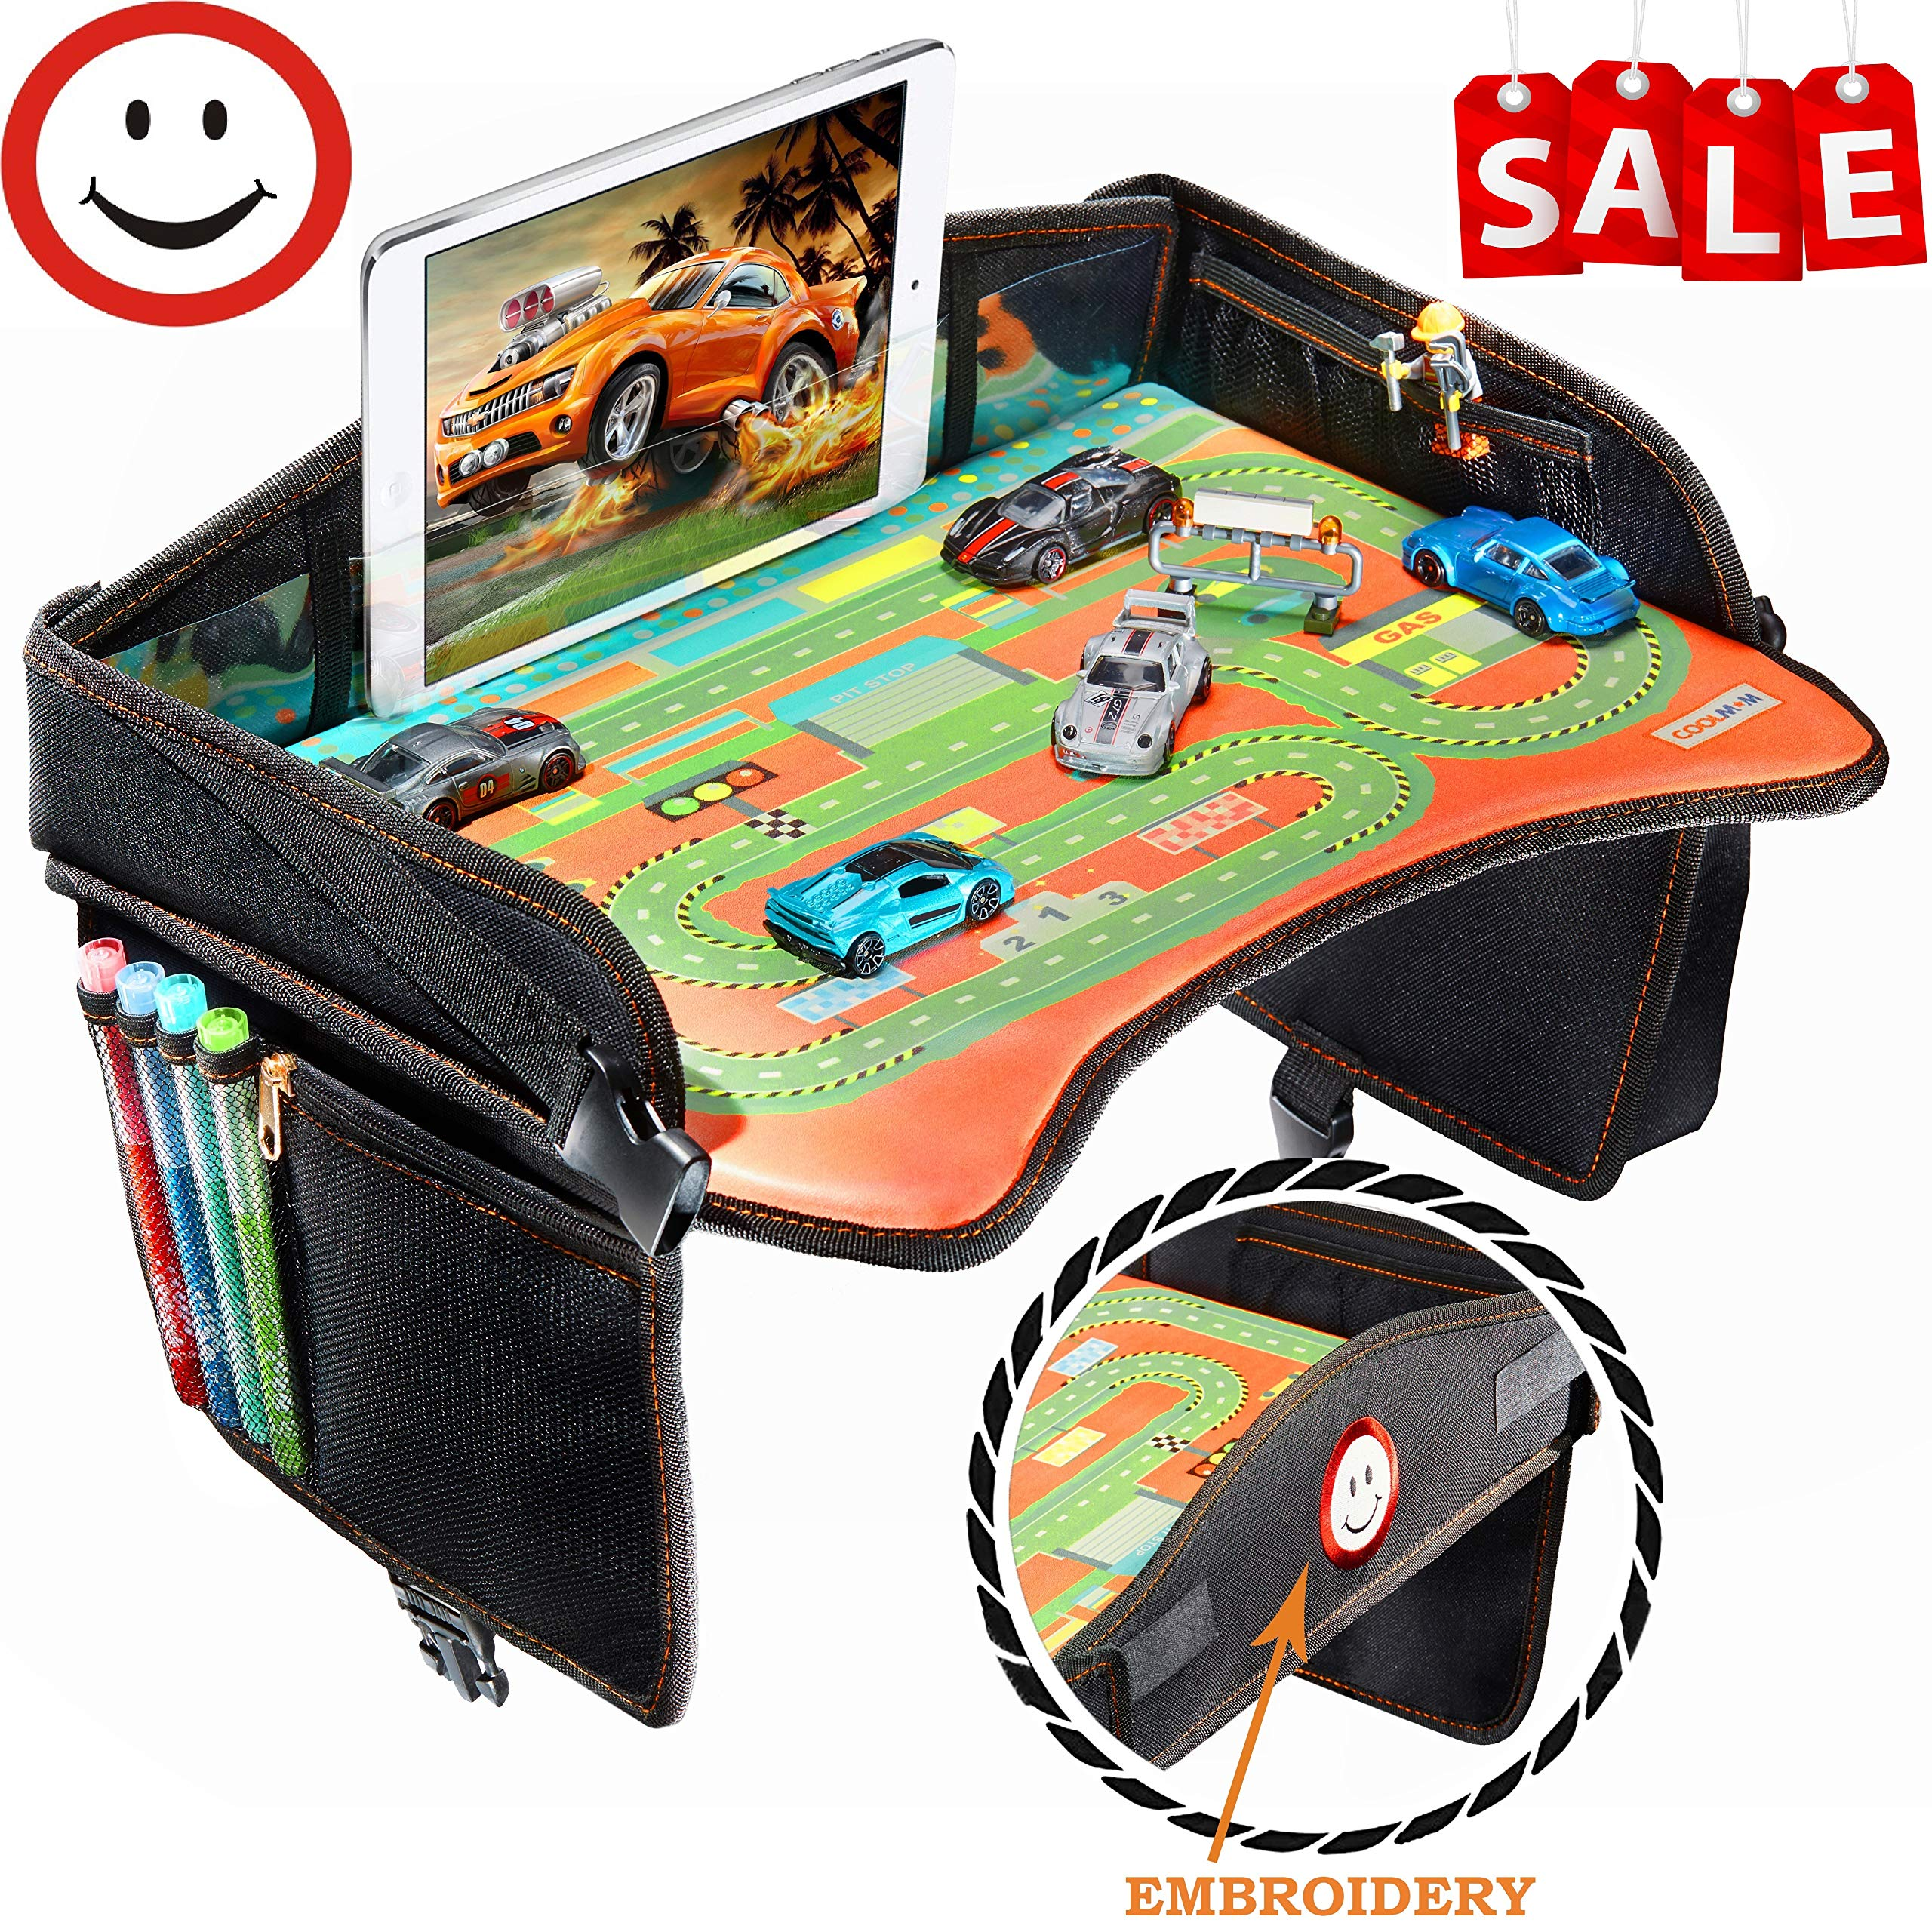 Travel Tray - Ideal as Kids Travel Tray - Toddler Travel Tray & Baby Stroller Tray - Travel Activity Tray & Play Tray - Baby Snack Tray & Kid's Car Seat Tray - Play Table (Premium Black) by Coolmum